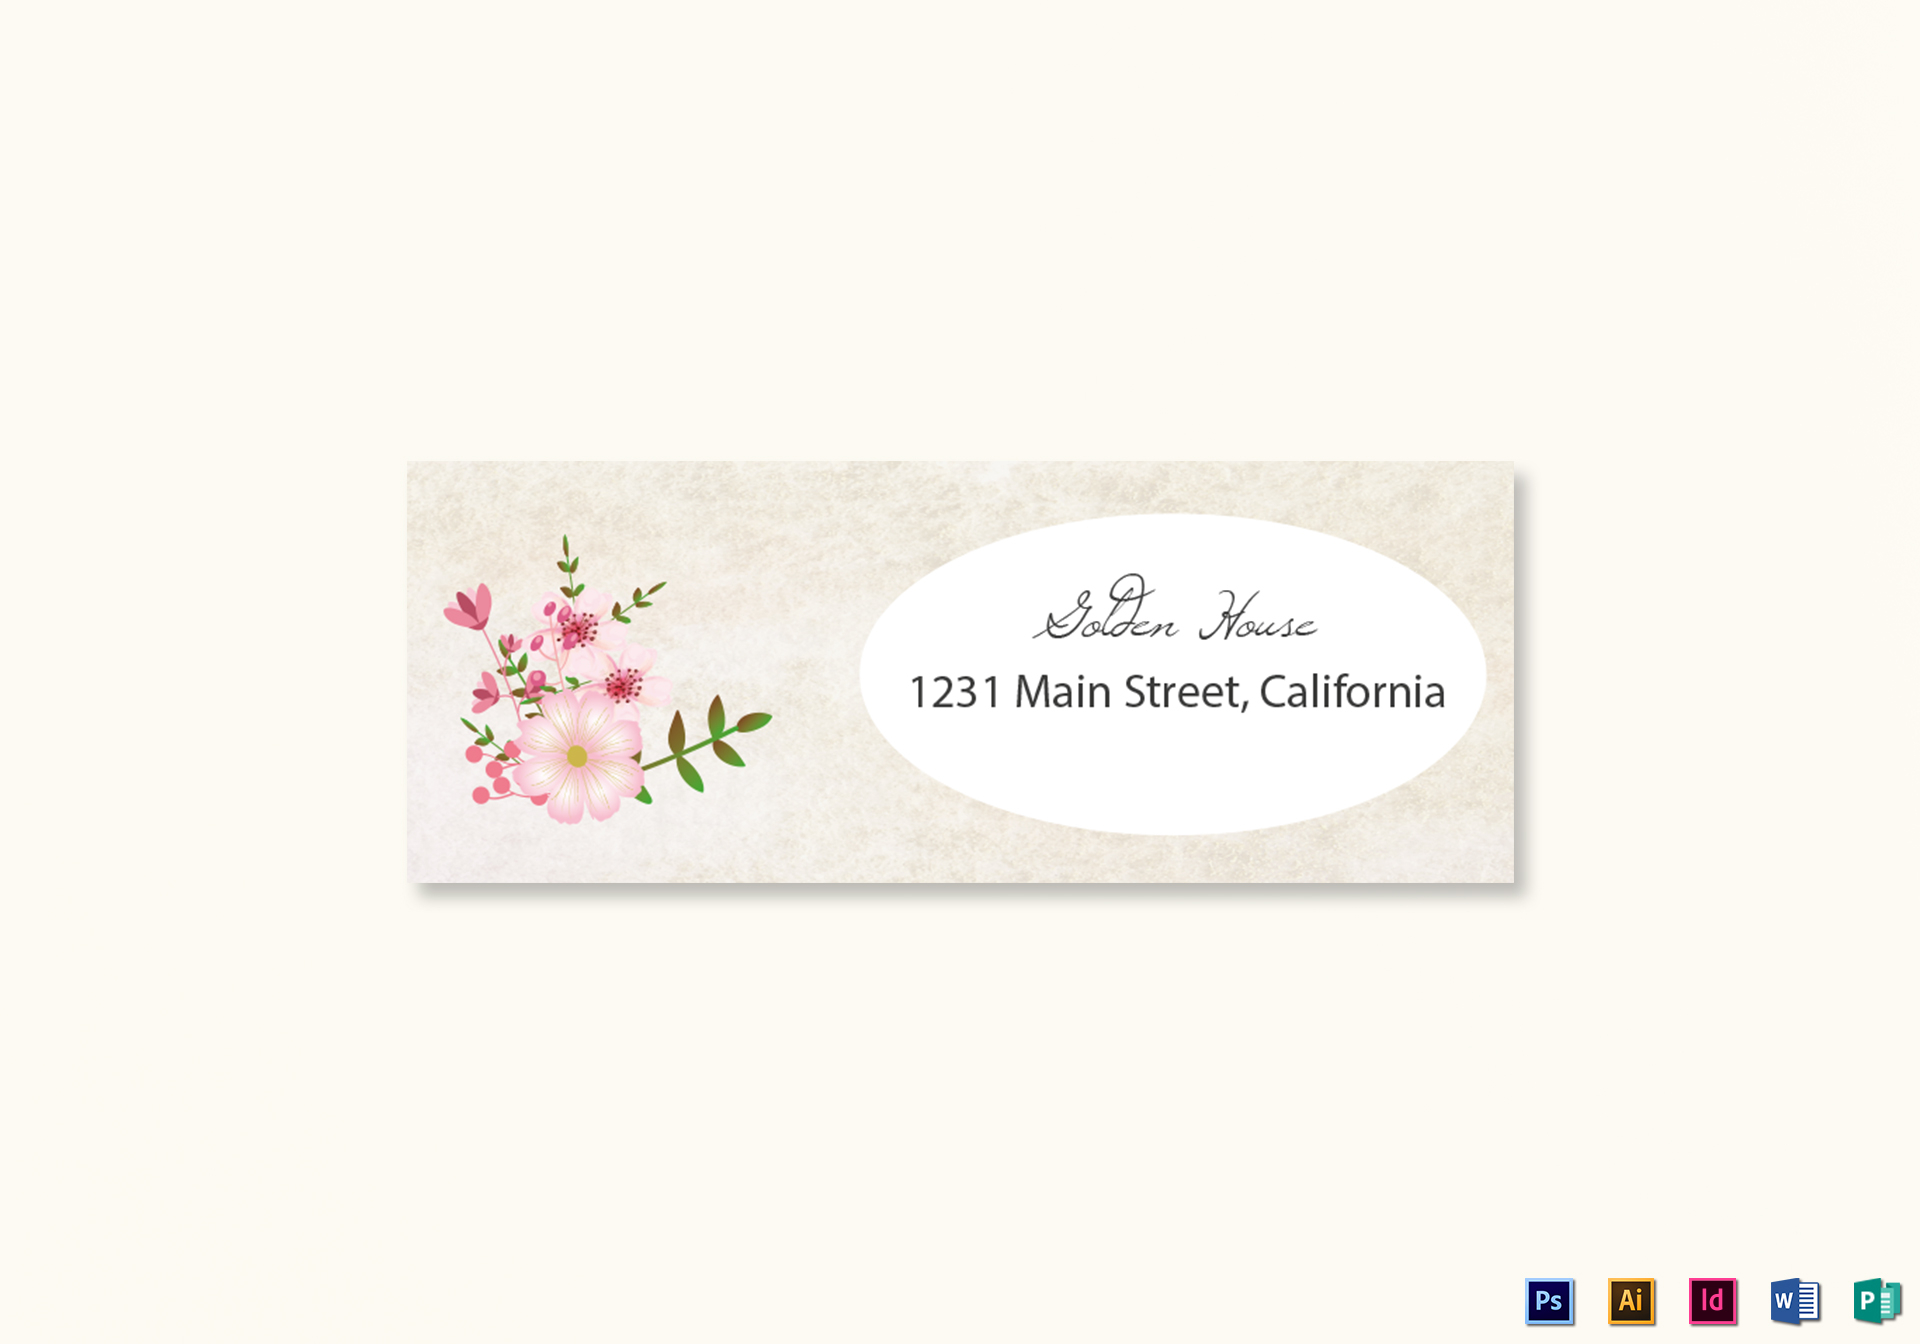 pink floral wedding address labels card design template in. Black Bedroom Furniture Sets. Home Design Ideas